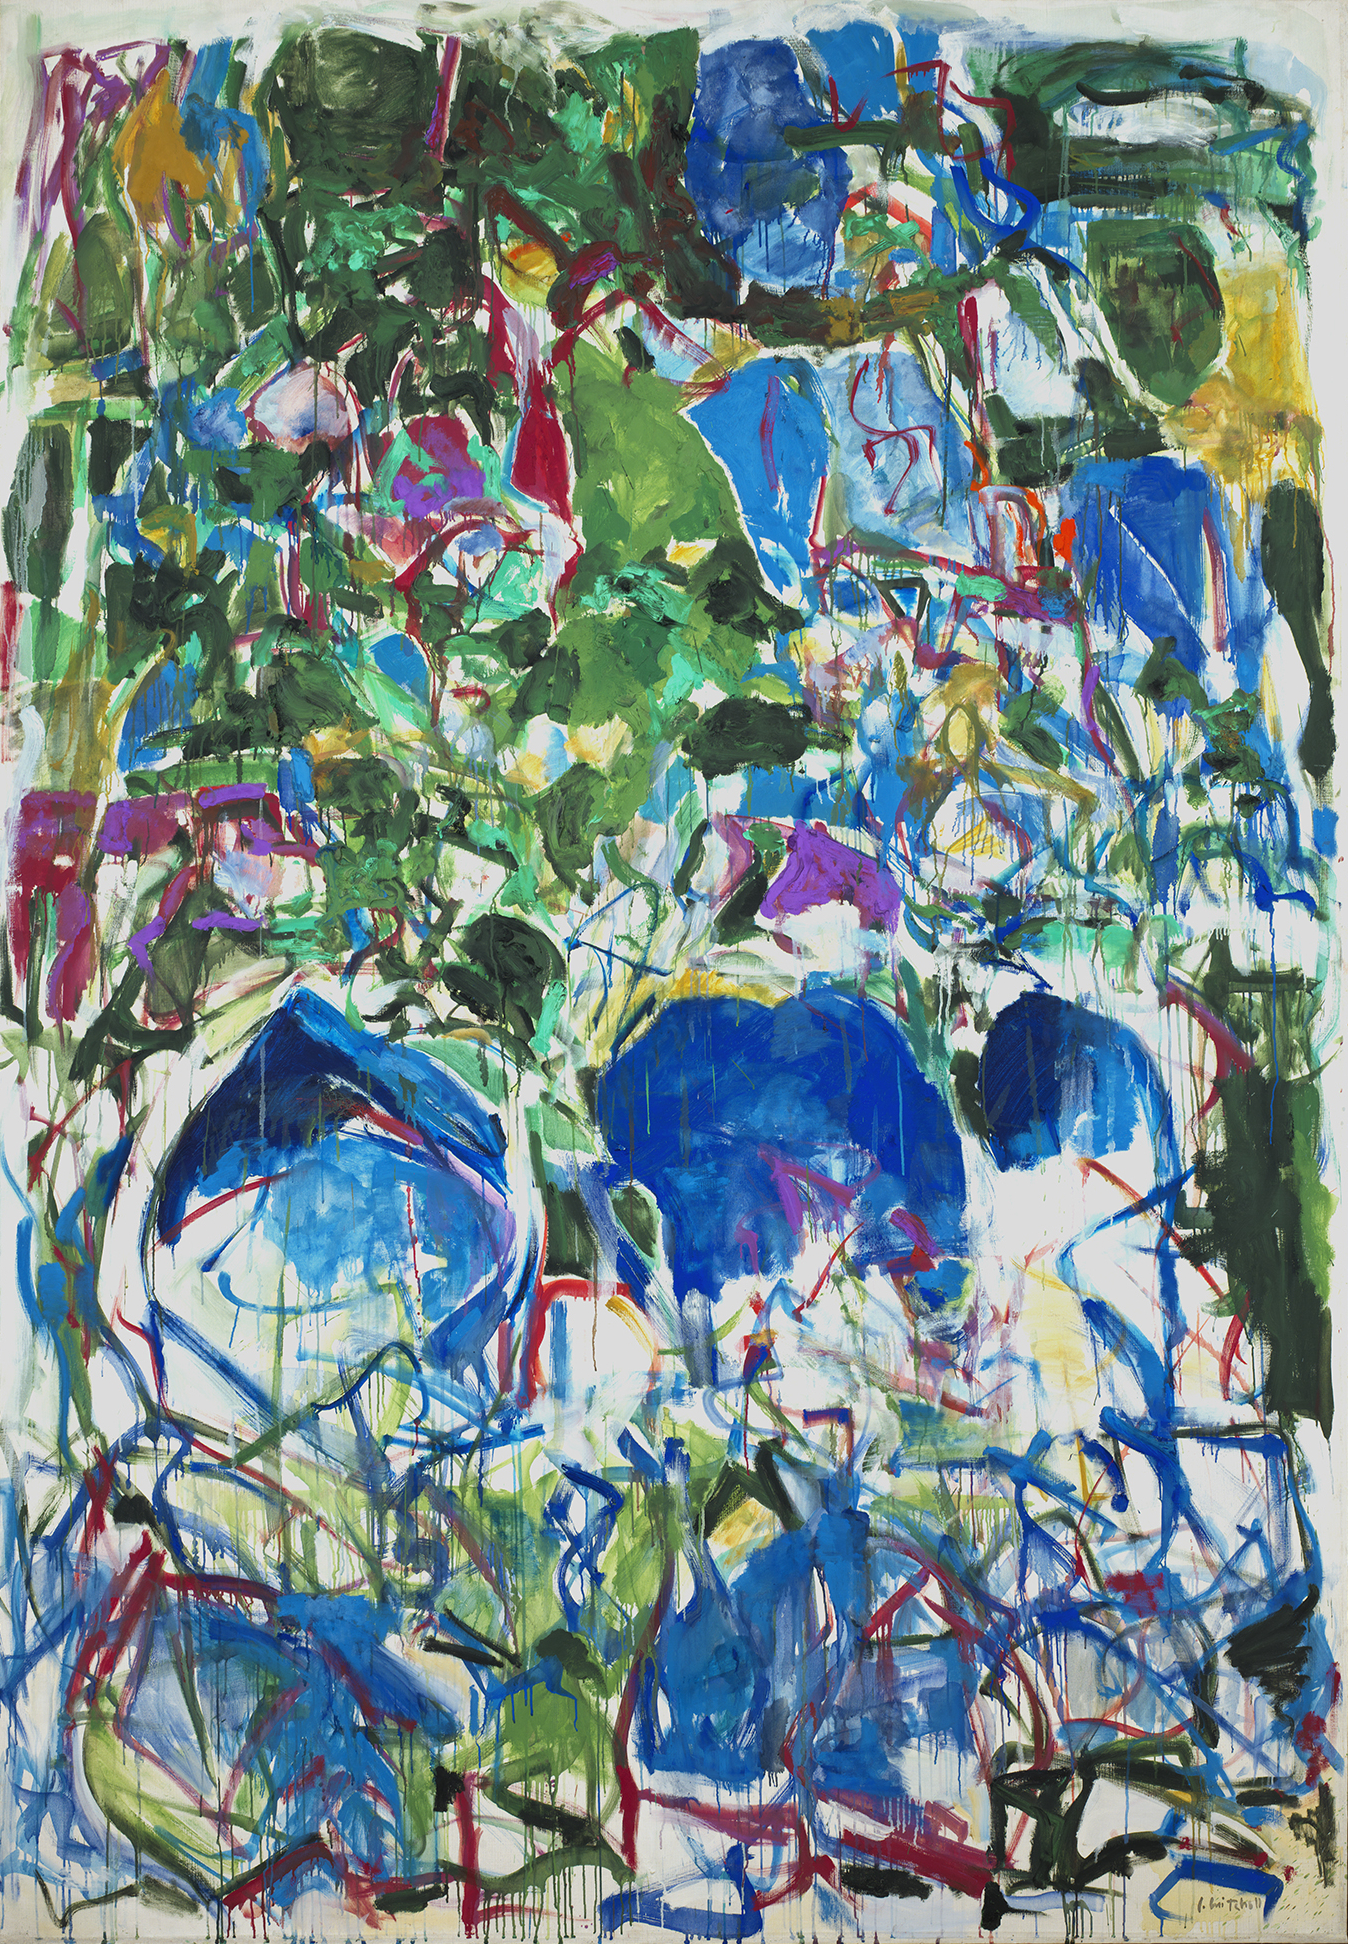 Joan Mitchell. My Landscape II. 1967. Smithsonian American Art Museum, Gift of Mr. and Mrs. David K. Anderson, Martha Jackson Memorial Collection © Estate of Joan Mitchell.